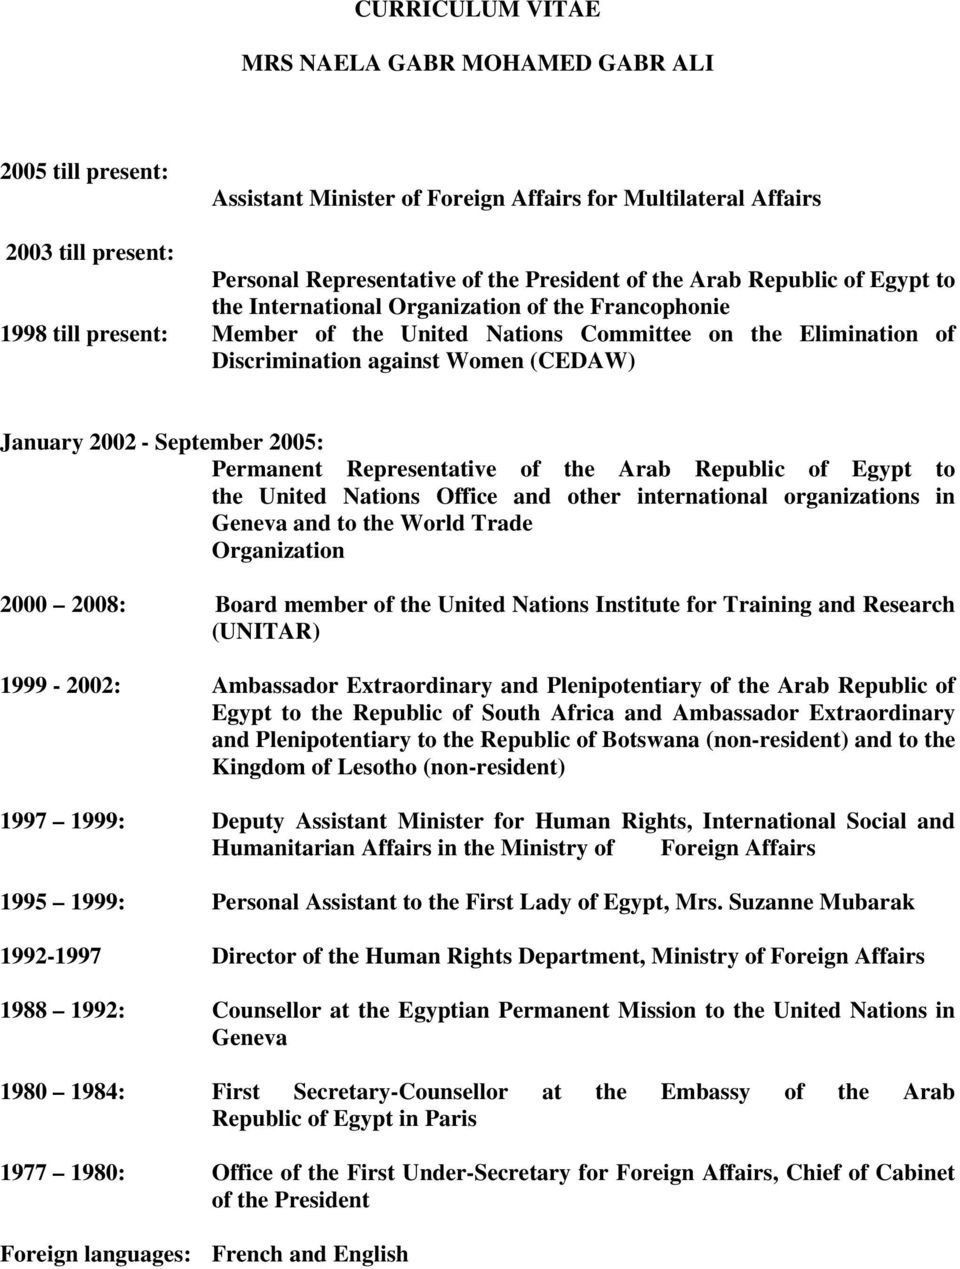 January 2002 - September 2005: Permanent Representative of the Arab Republic of Egypt to the United Nations Office and other international organizations in Geneva and to the World Trade Organization